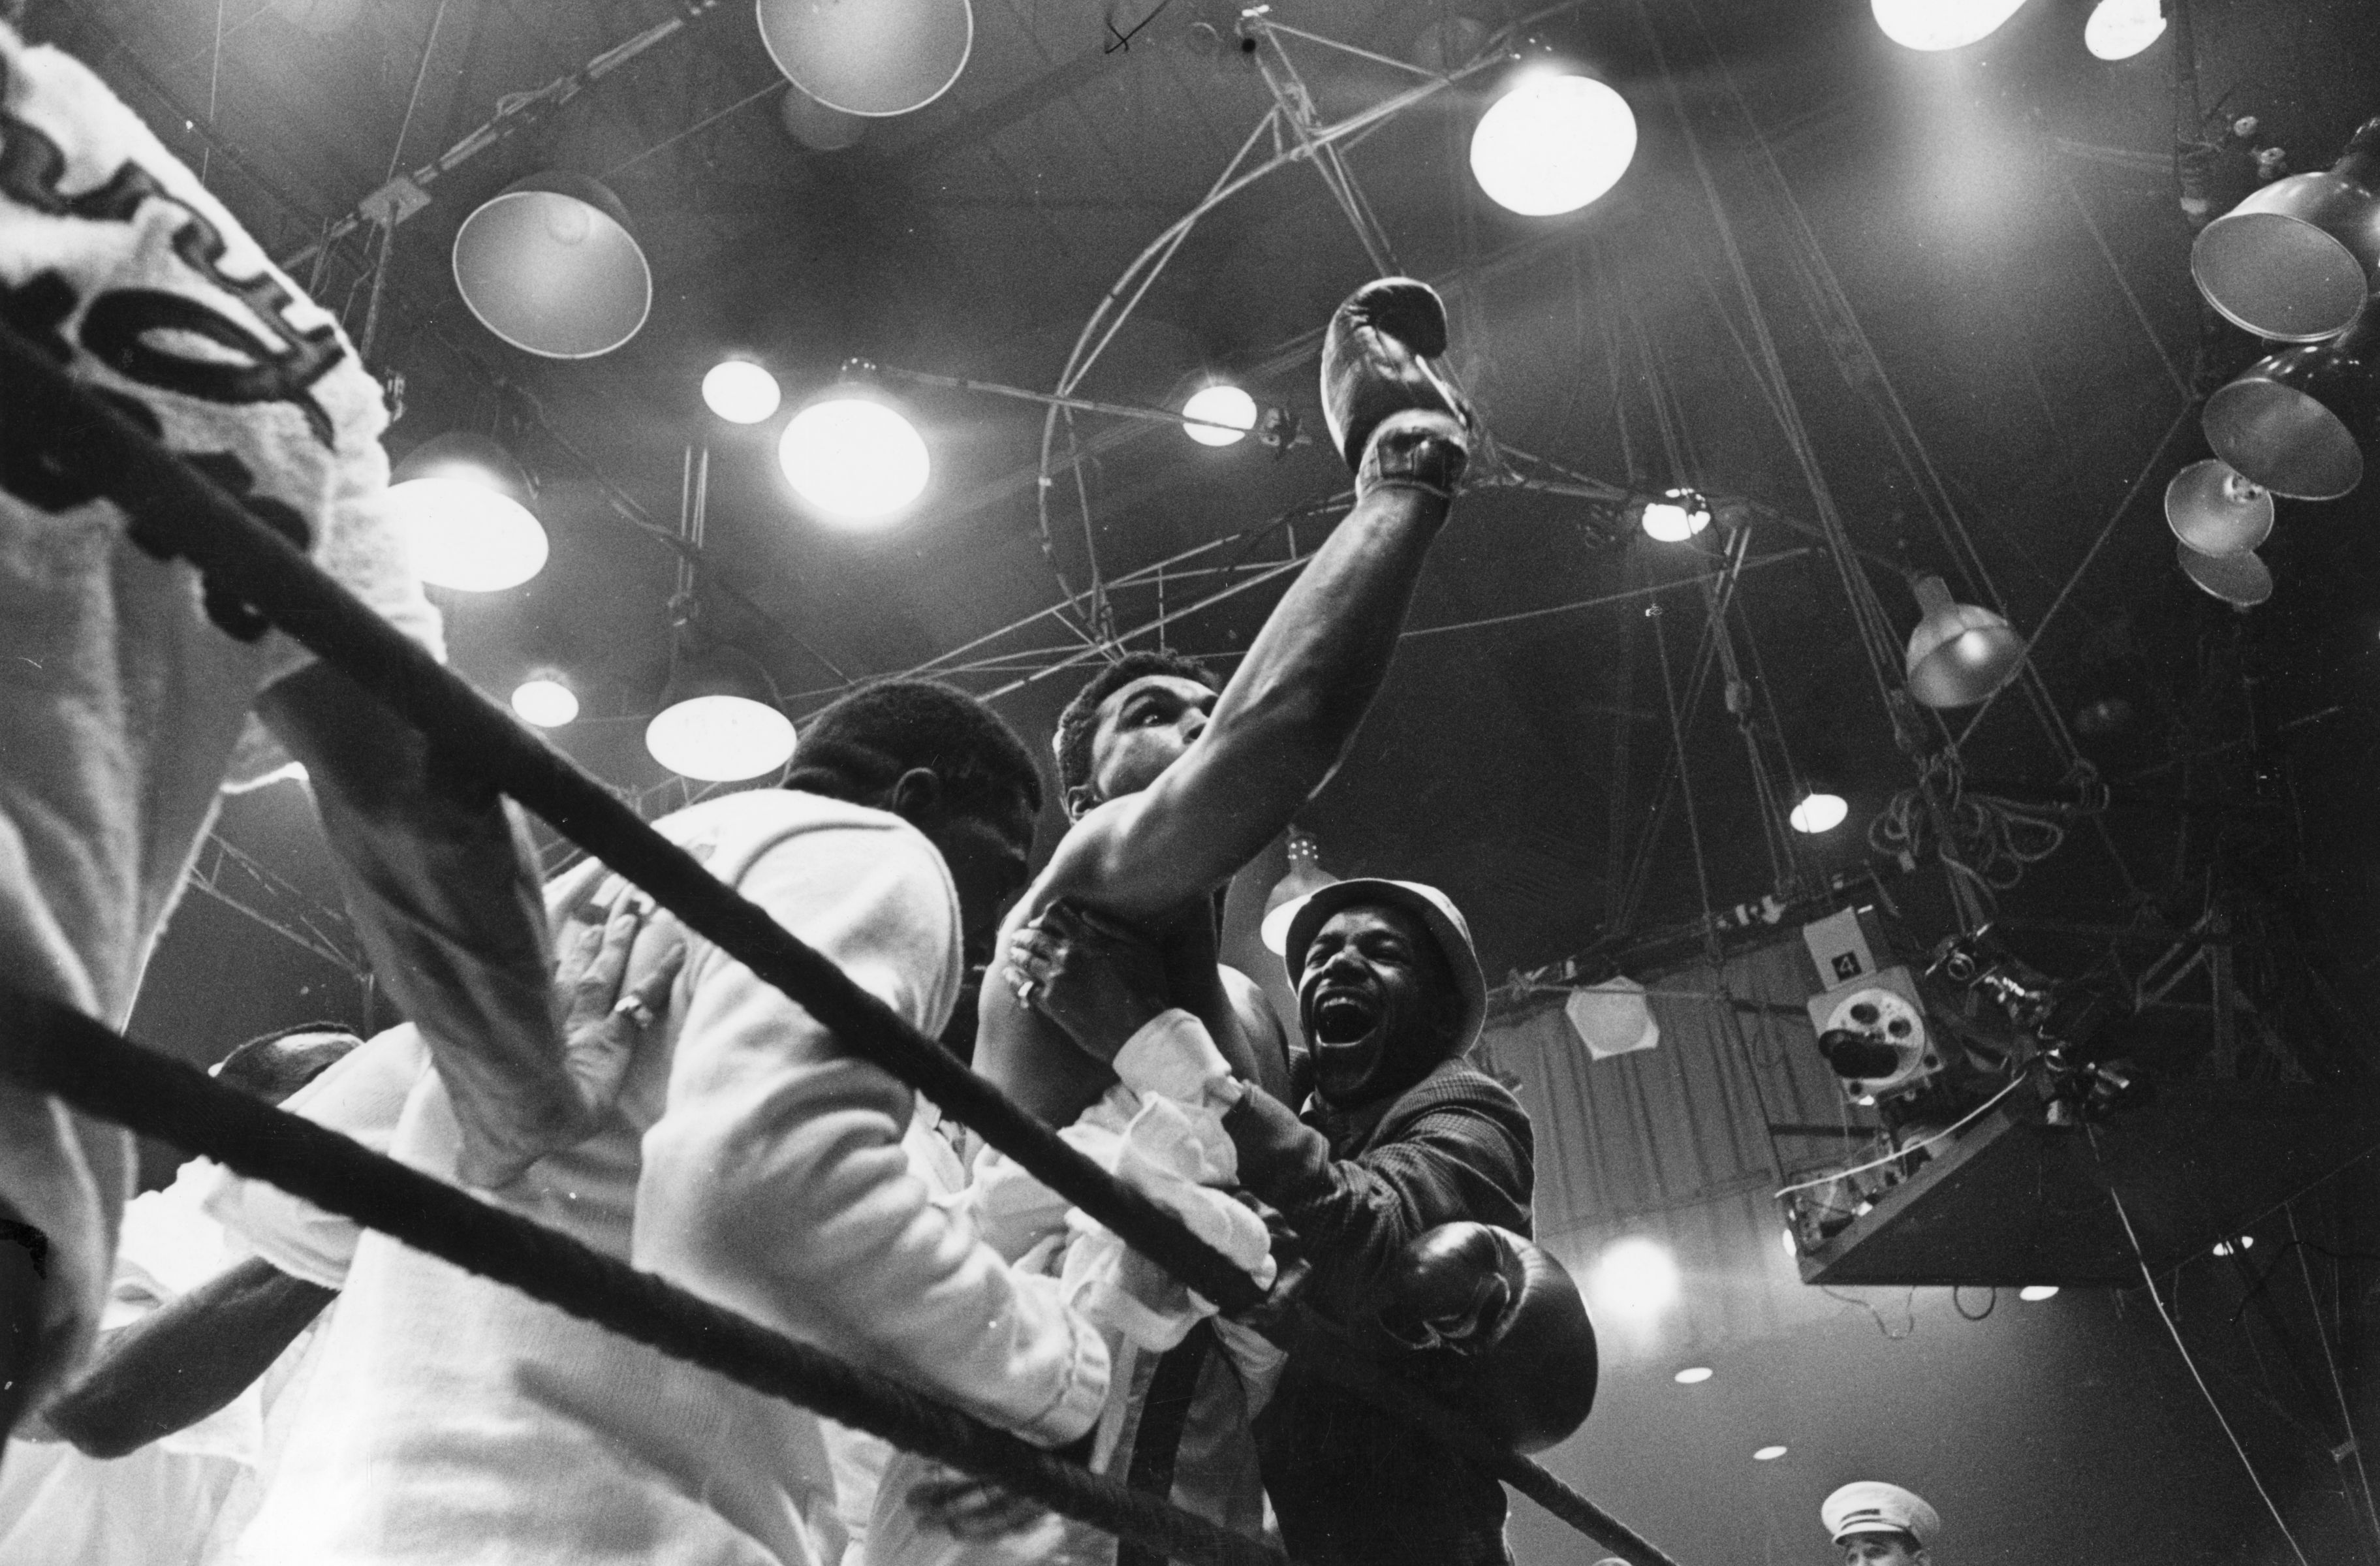 25th February 1964:  American boxer Cassius Clay, later Muhammad Ali, celebrates his win over Sonny Liston in their heavyweight title fight at Miami Beach, Florida. Clay won the contest, becoming world champion for the first time, when Liston failed to come out at the start of the seventh round.  (Photo by Harry Benson/Express/Getty Images)